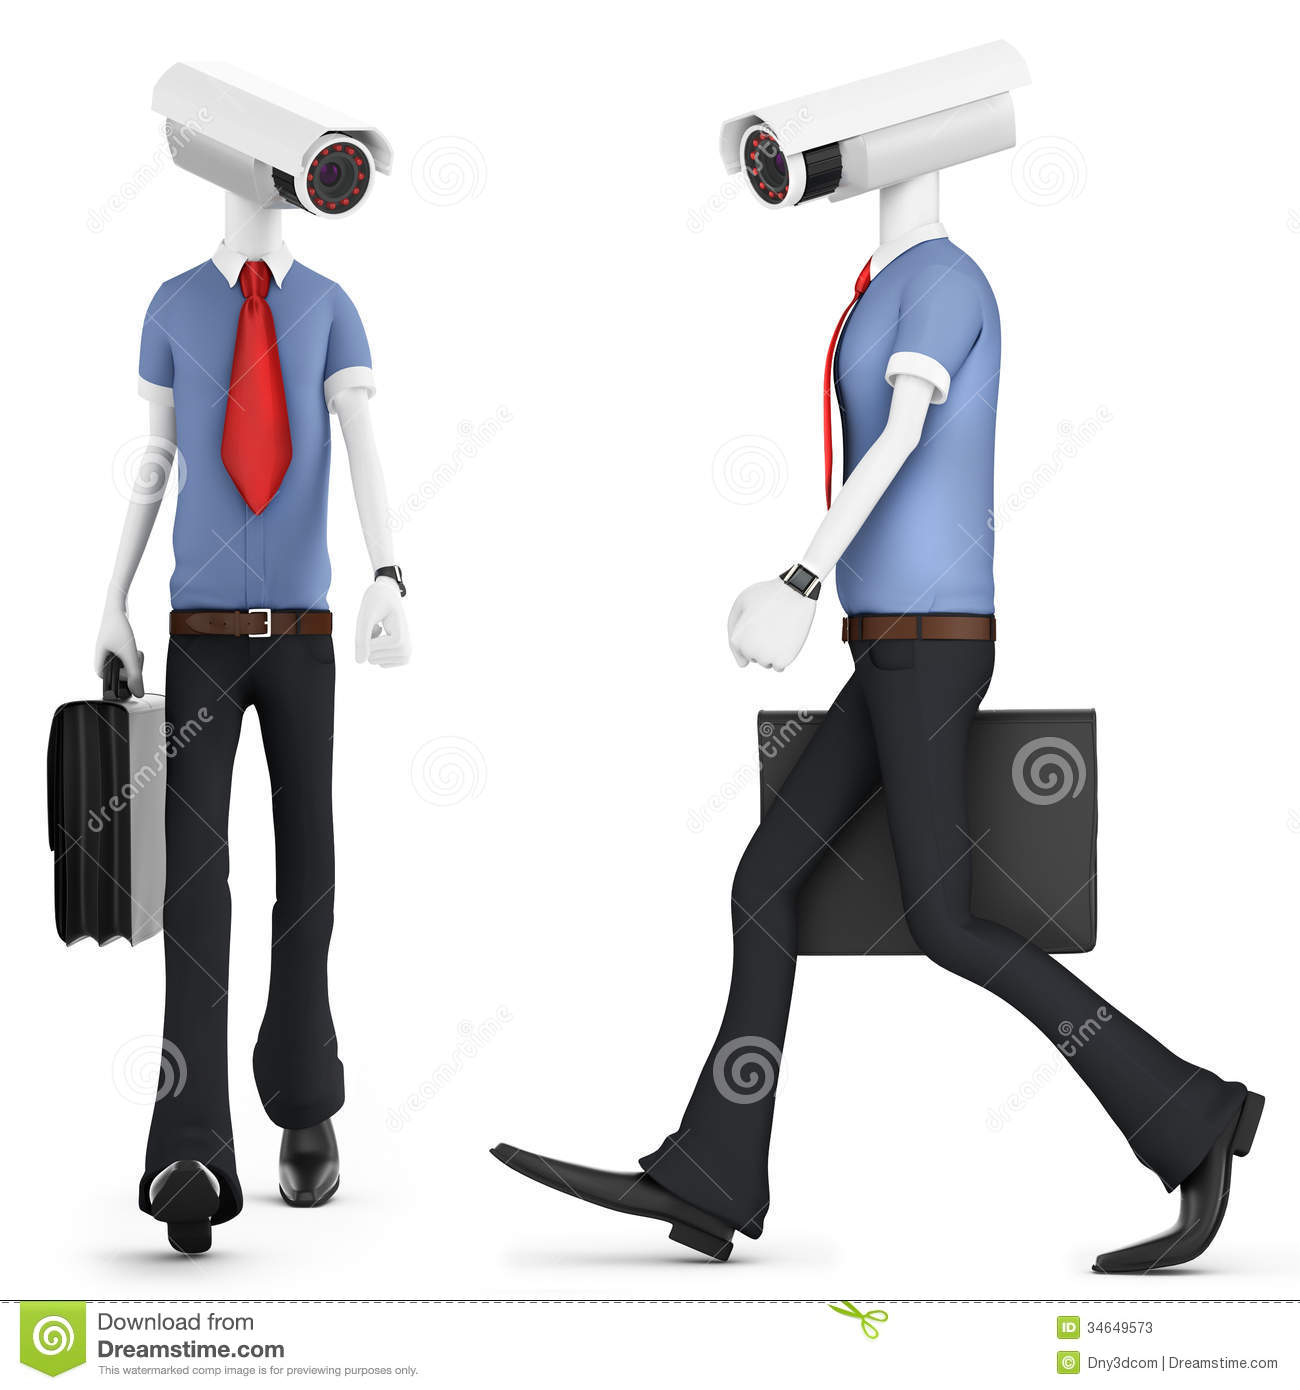 3d Man Security Camera Surveillance Stock Photos - Image: 34649573